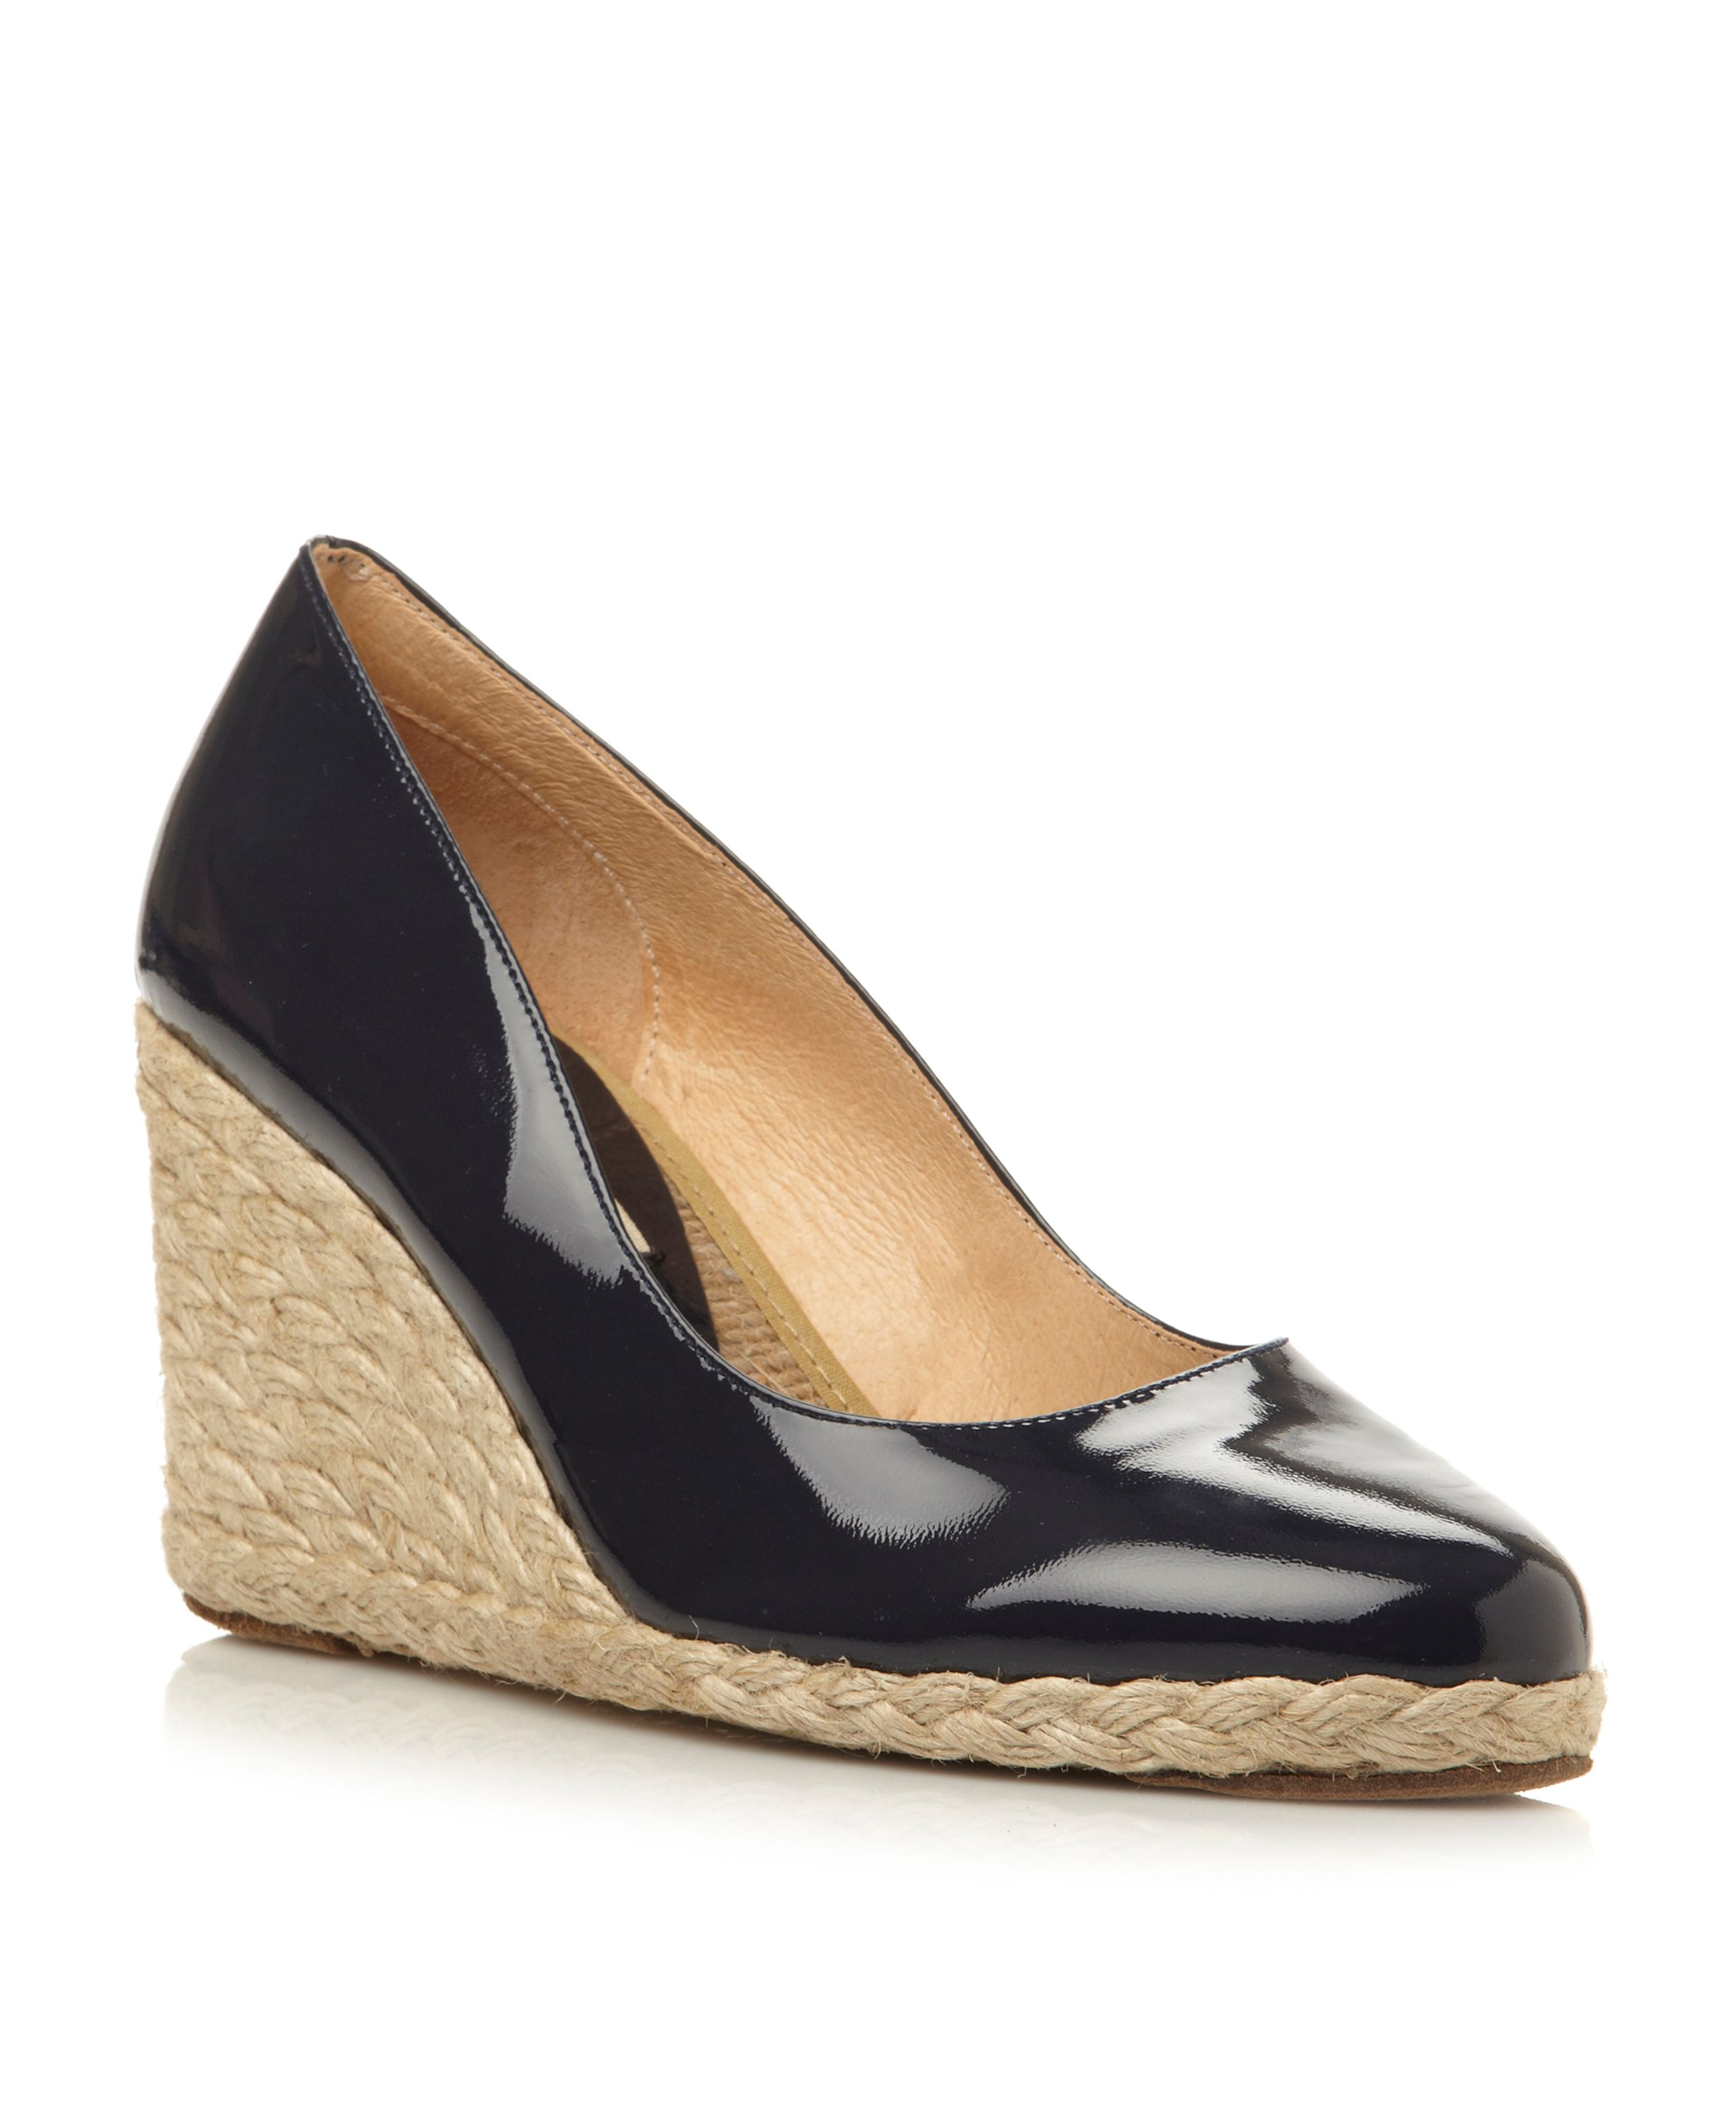 Annato patent wedge espadrille court shoes